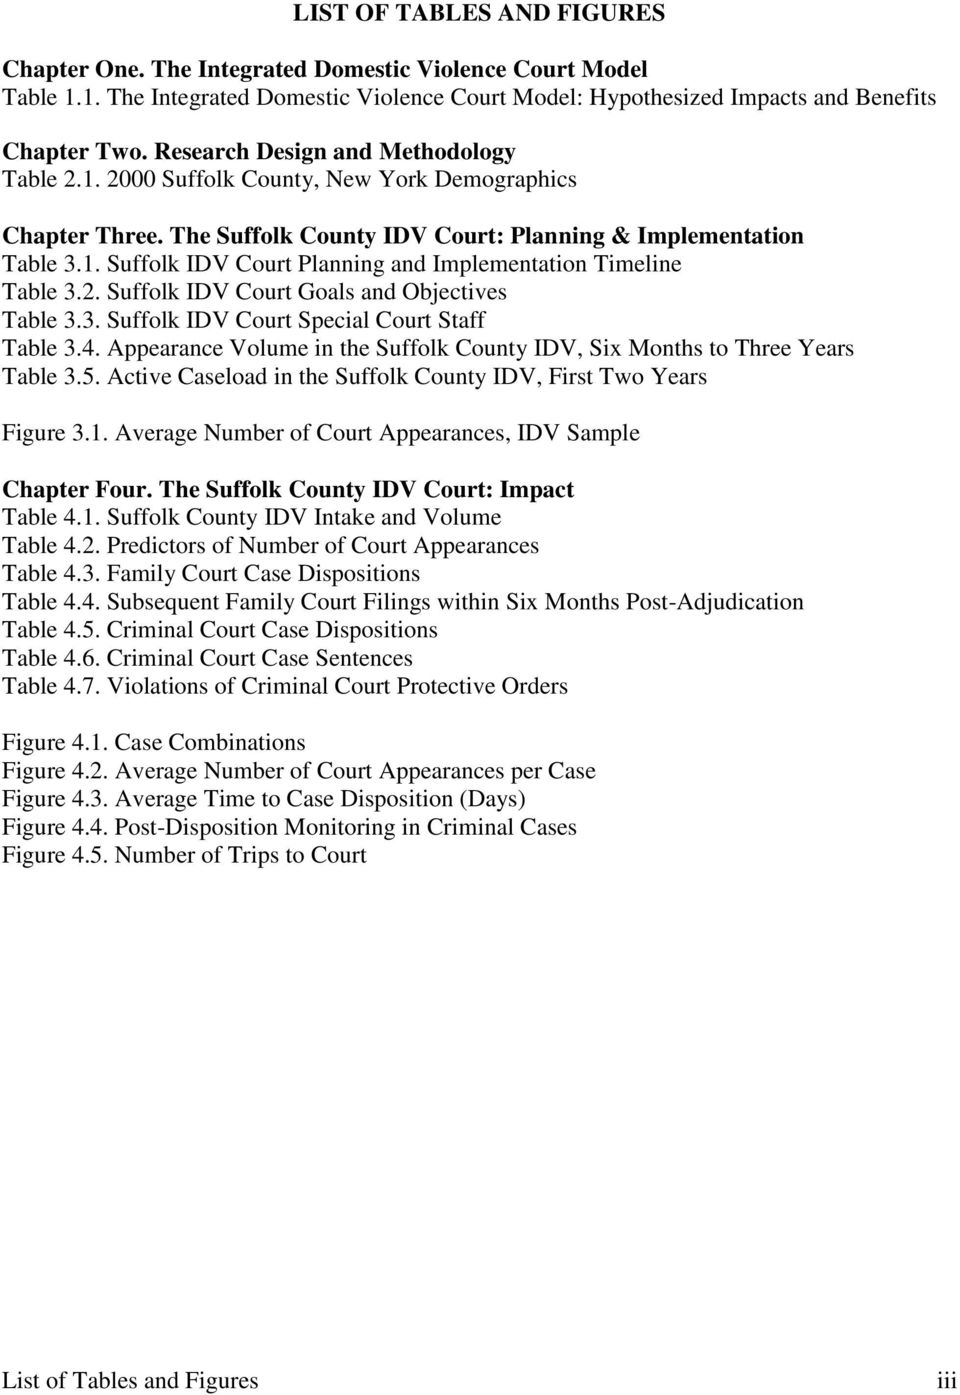 By Photo Congress || Onondaga County Criminal Court Docket